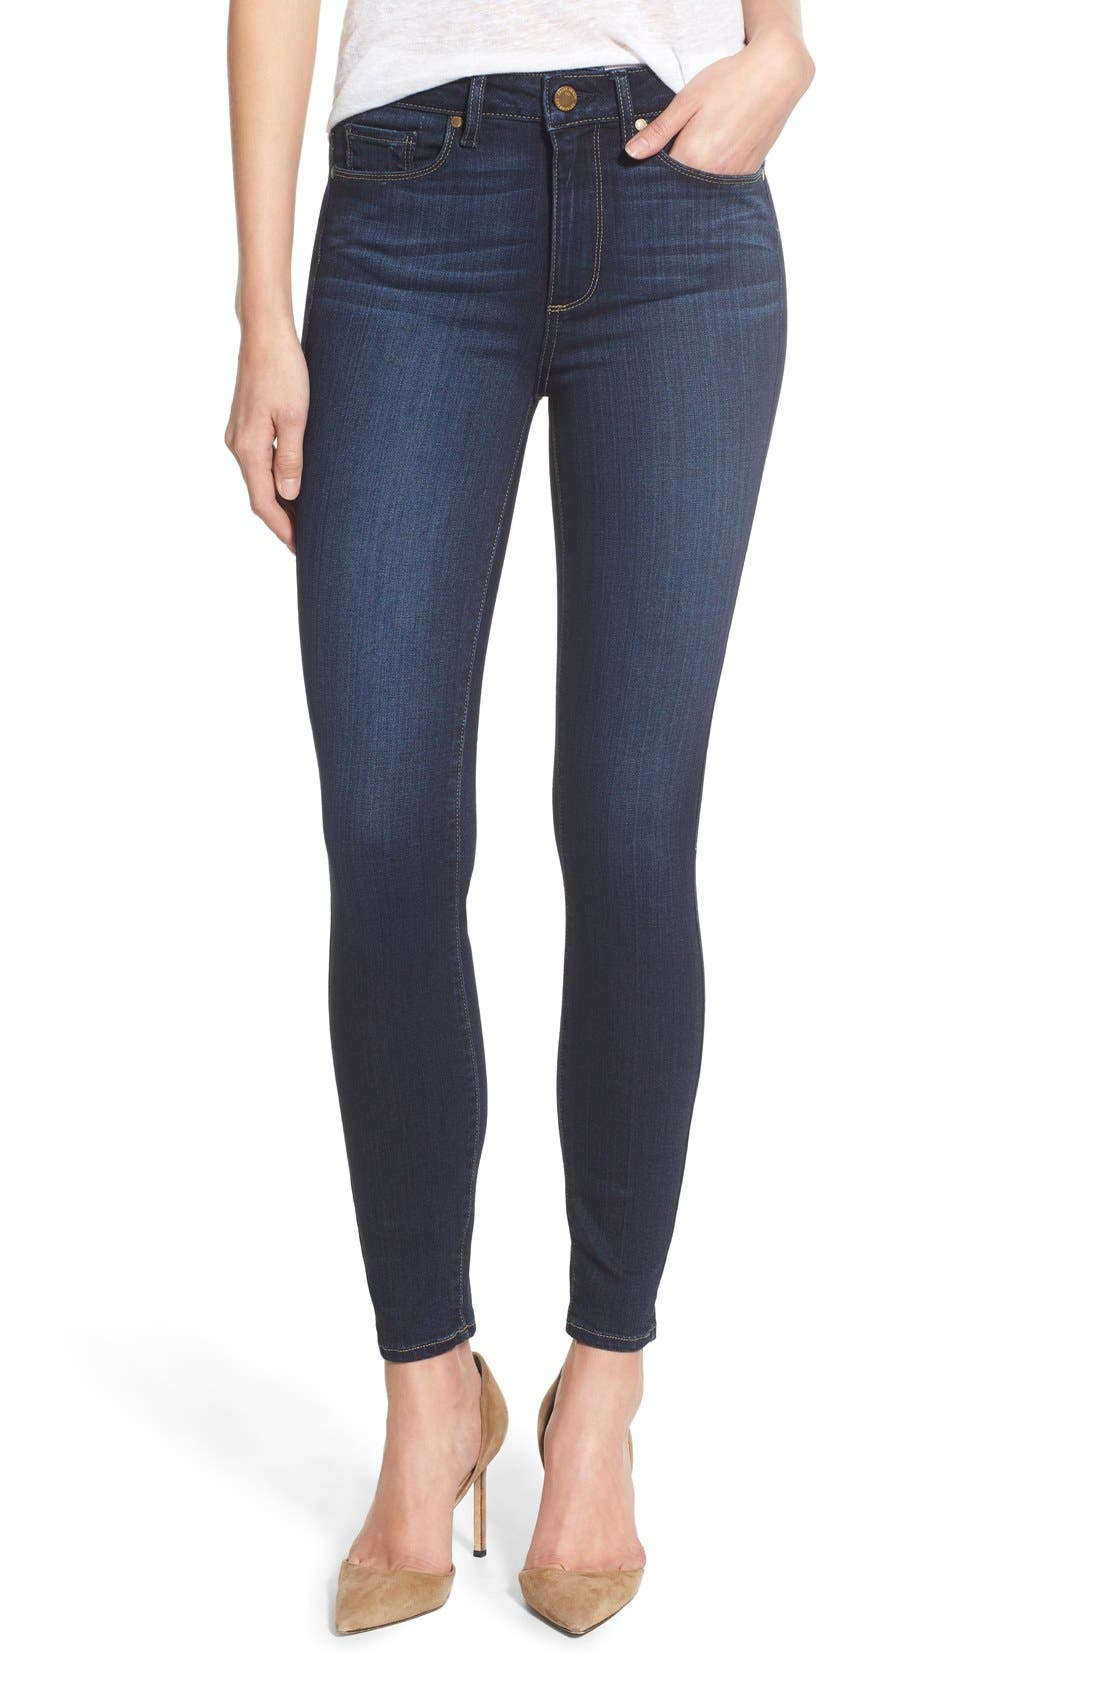 PAIGE Transcend - Hoxton High Waist Ankle Ultra Skinny Jeans (Hartmann)